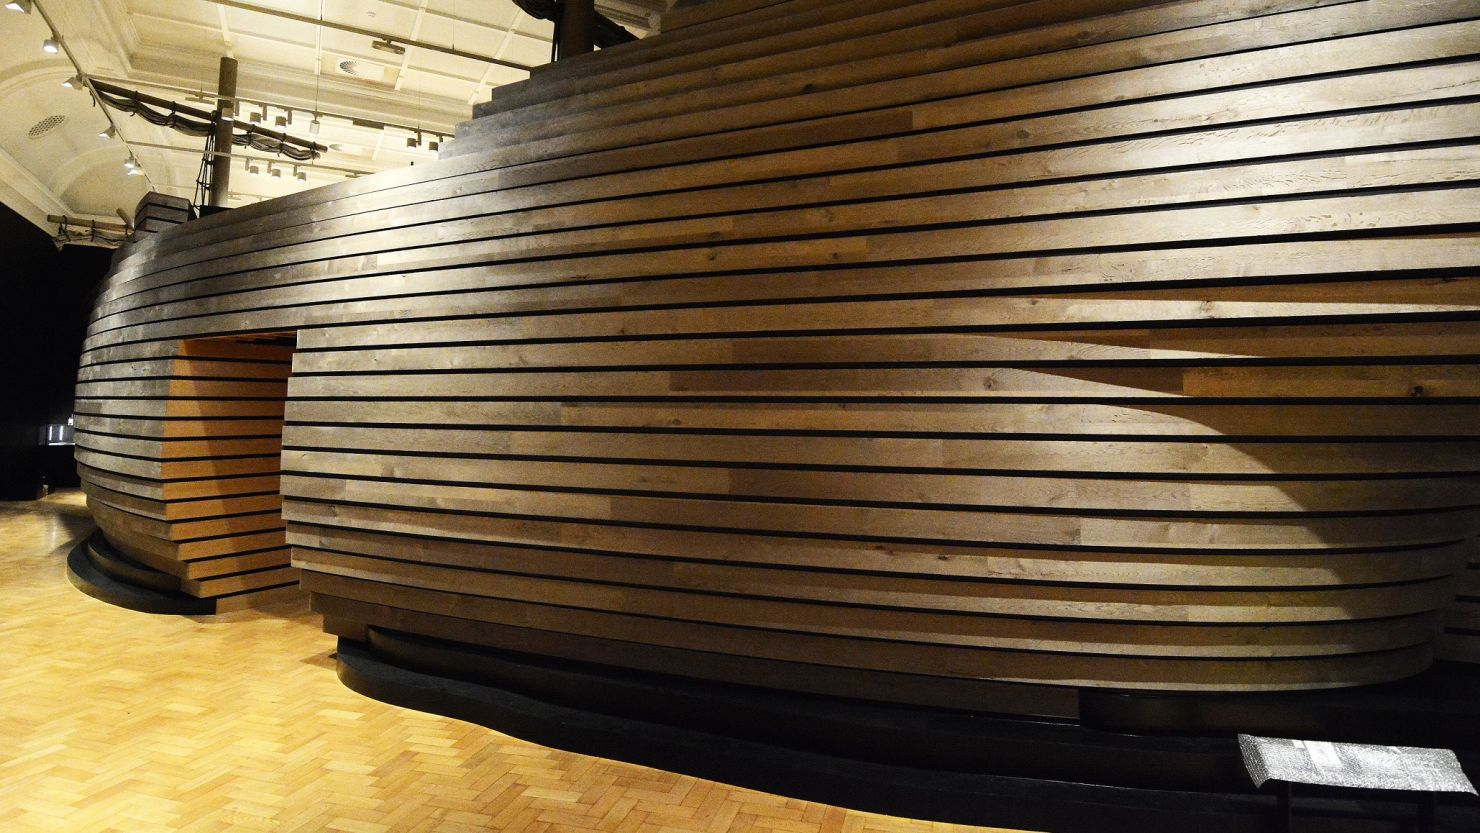 Image of the ship interactive in The Box's Mayflower 400 exhibition